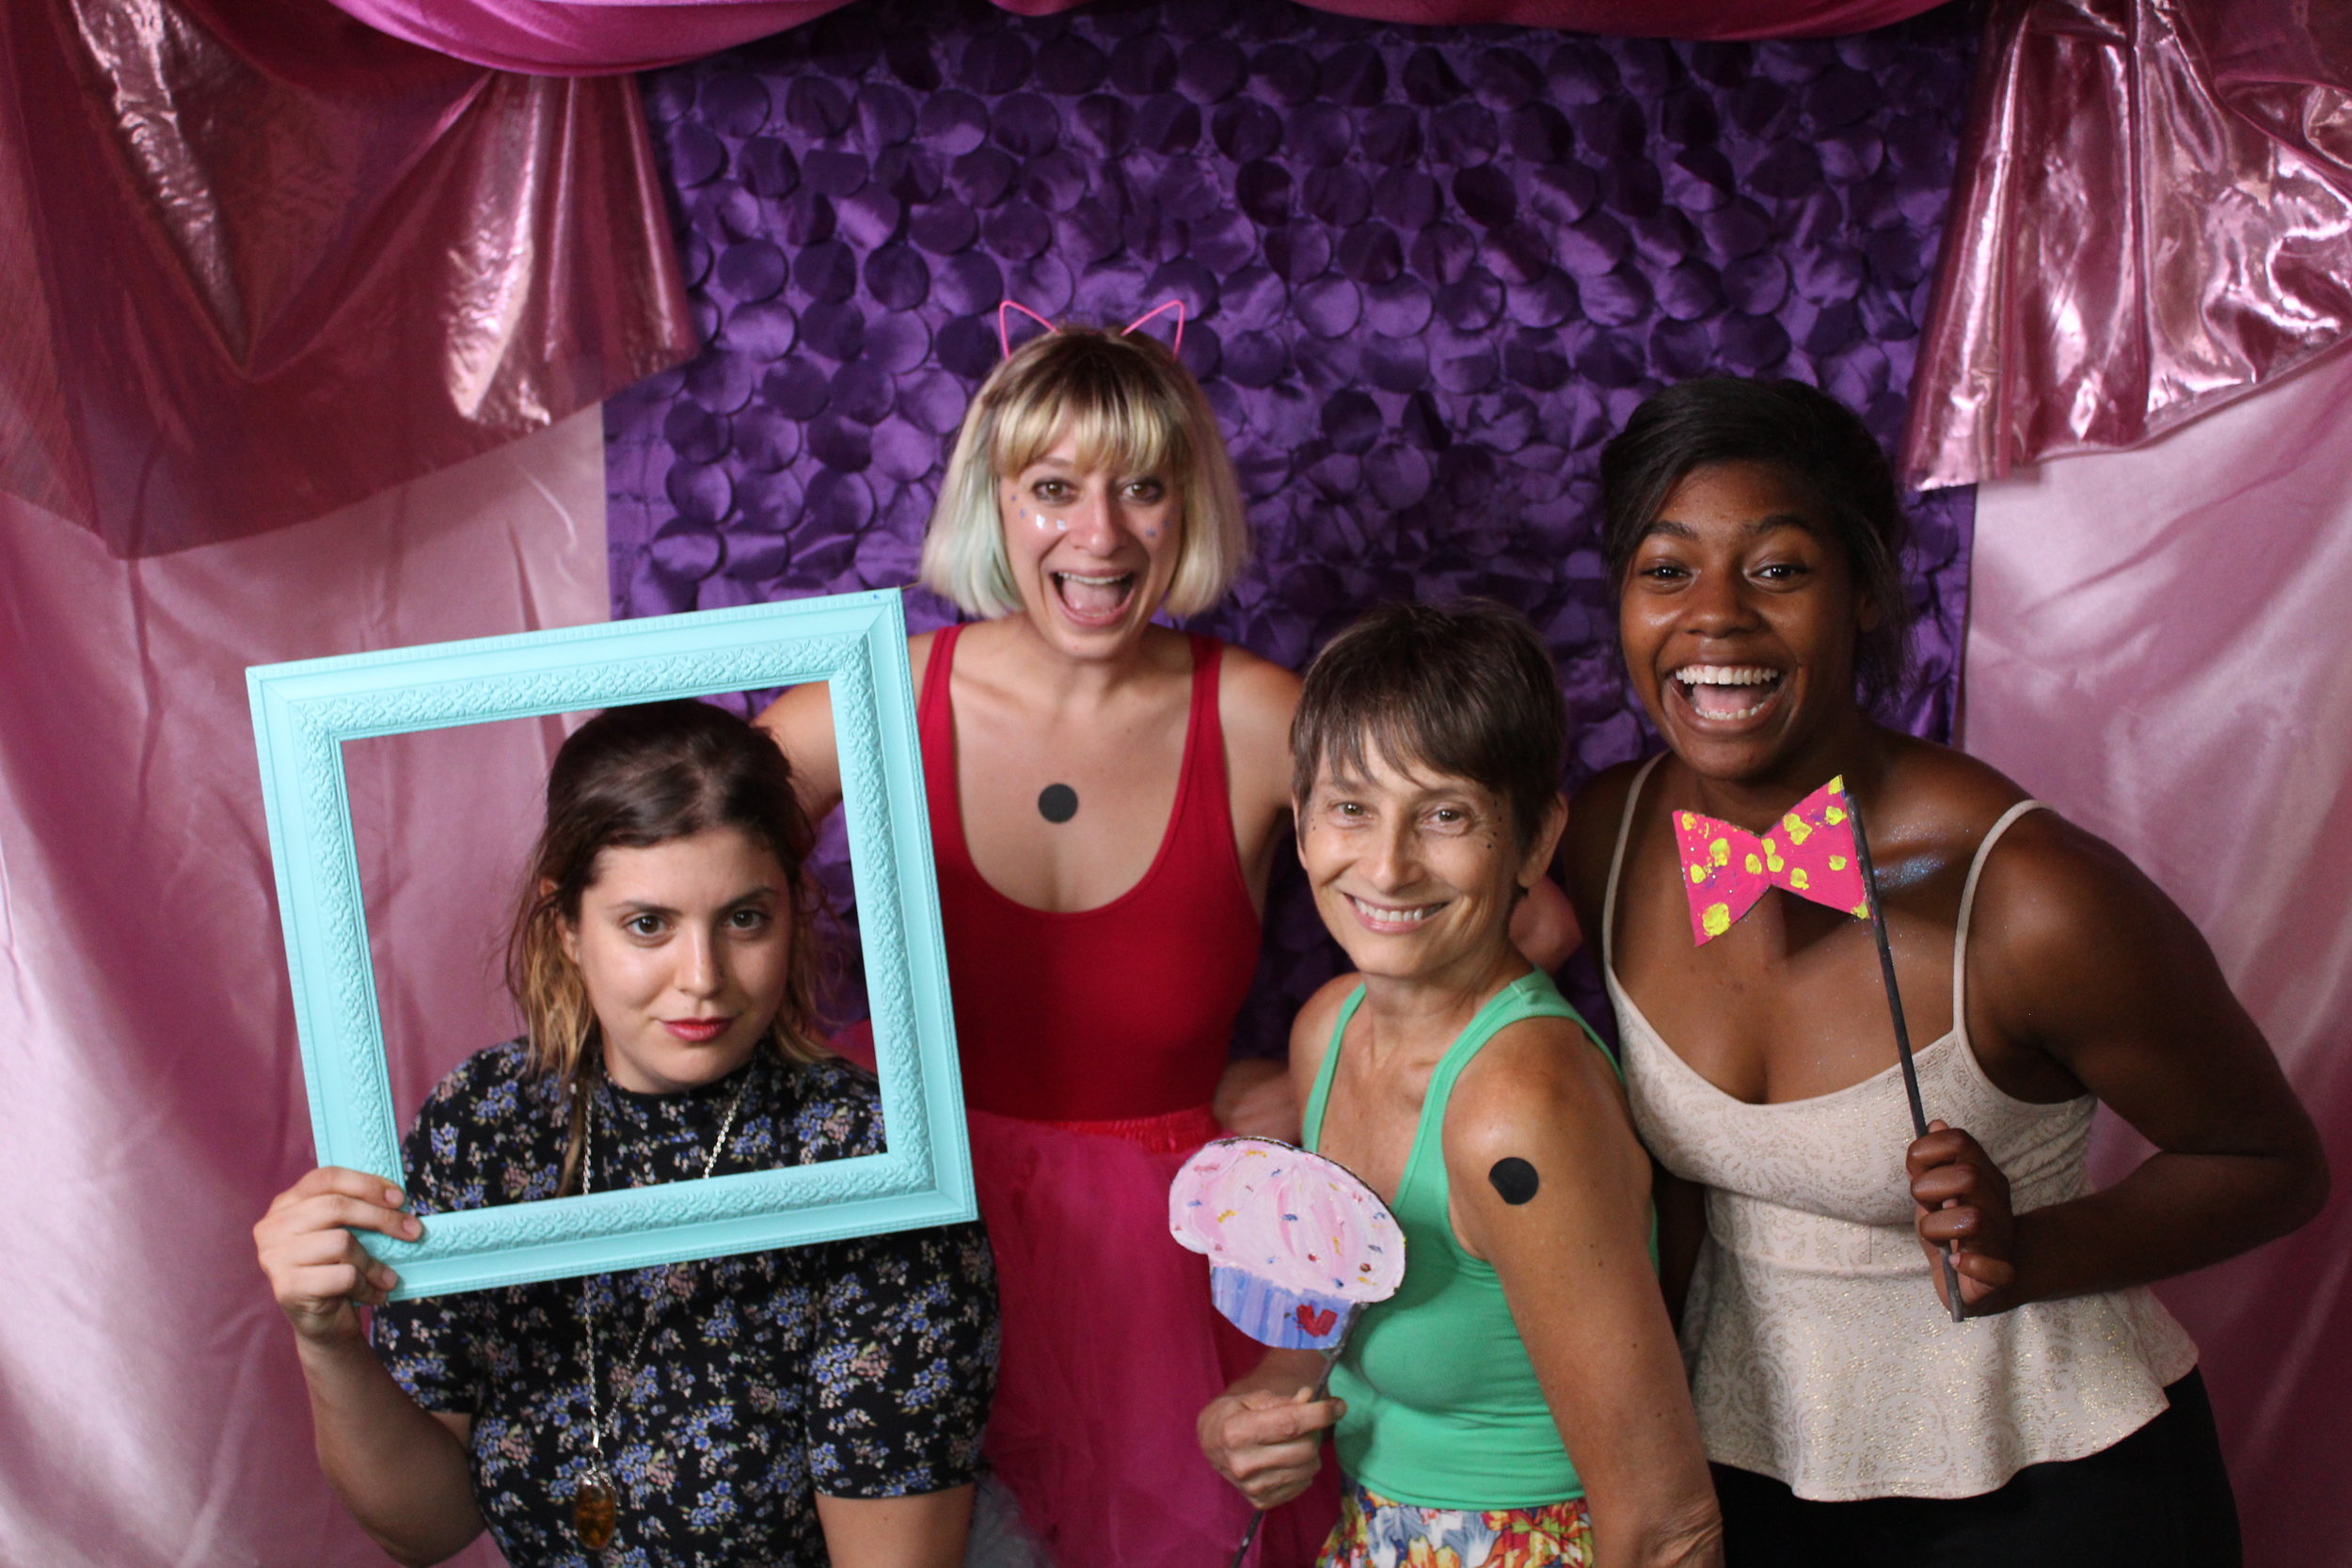 Xenia Simos, Willow Goldstein, Olive Hagemeier, and Onyx Simpson pose for a photo together at The Bakery's birthday party. Image by Matt Kelly.